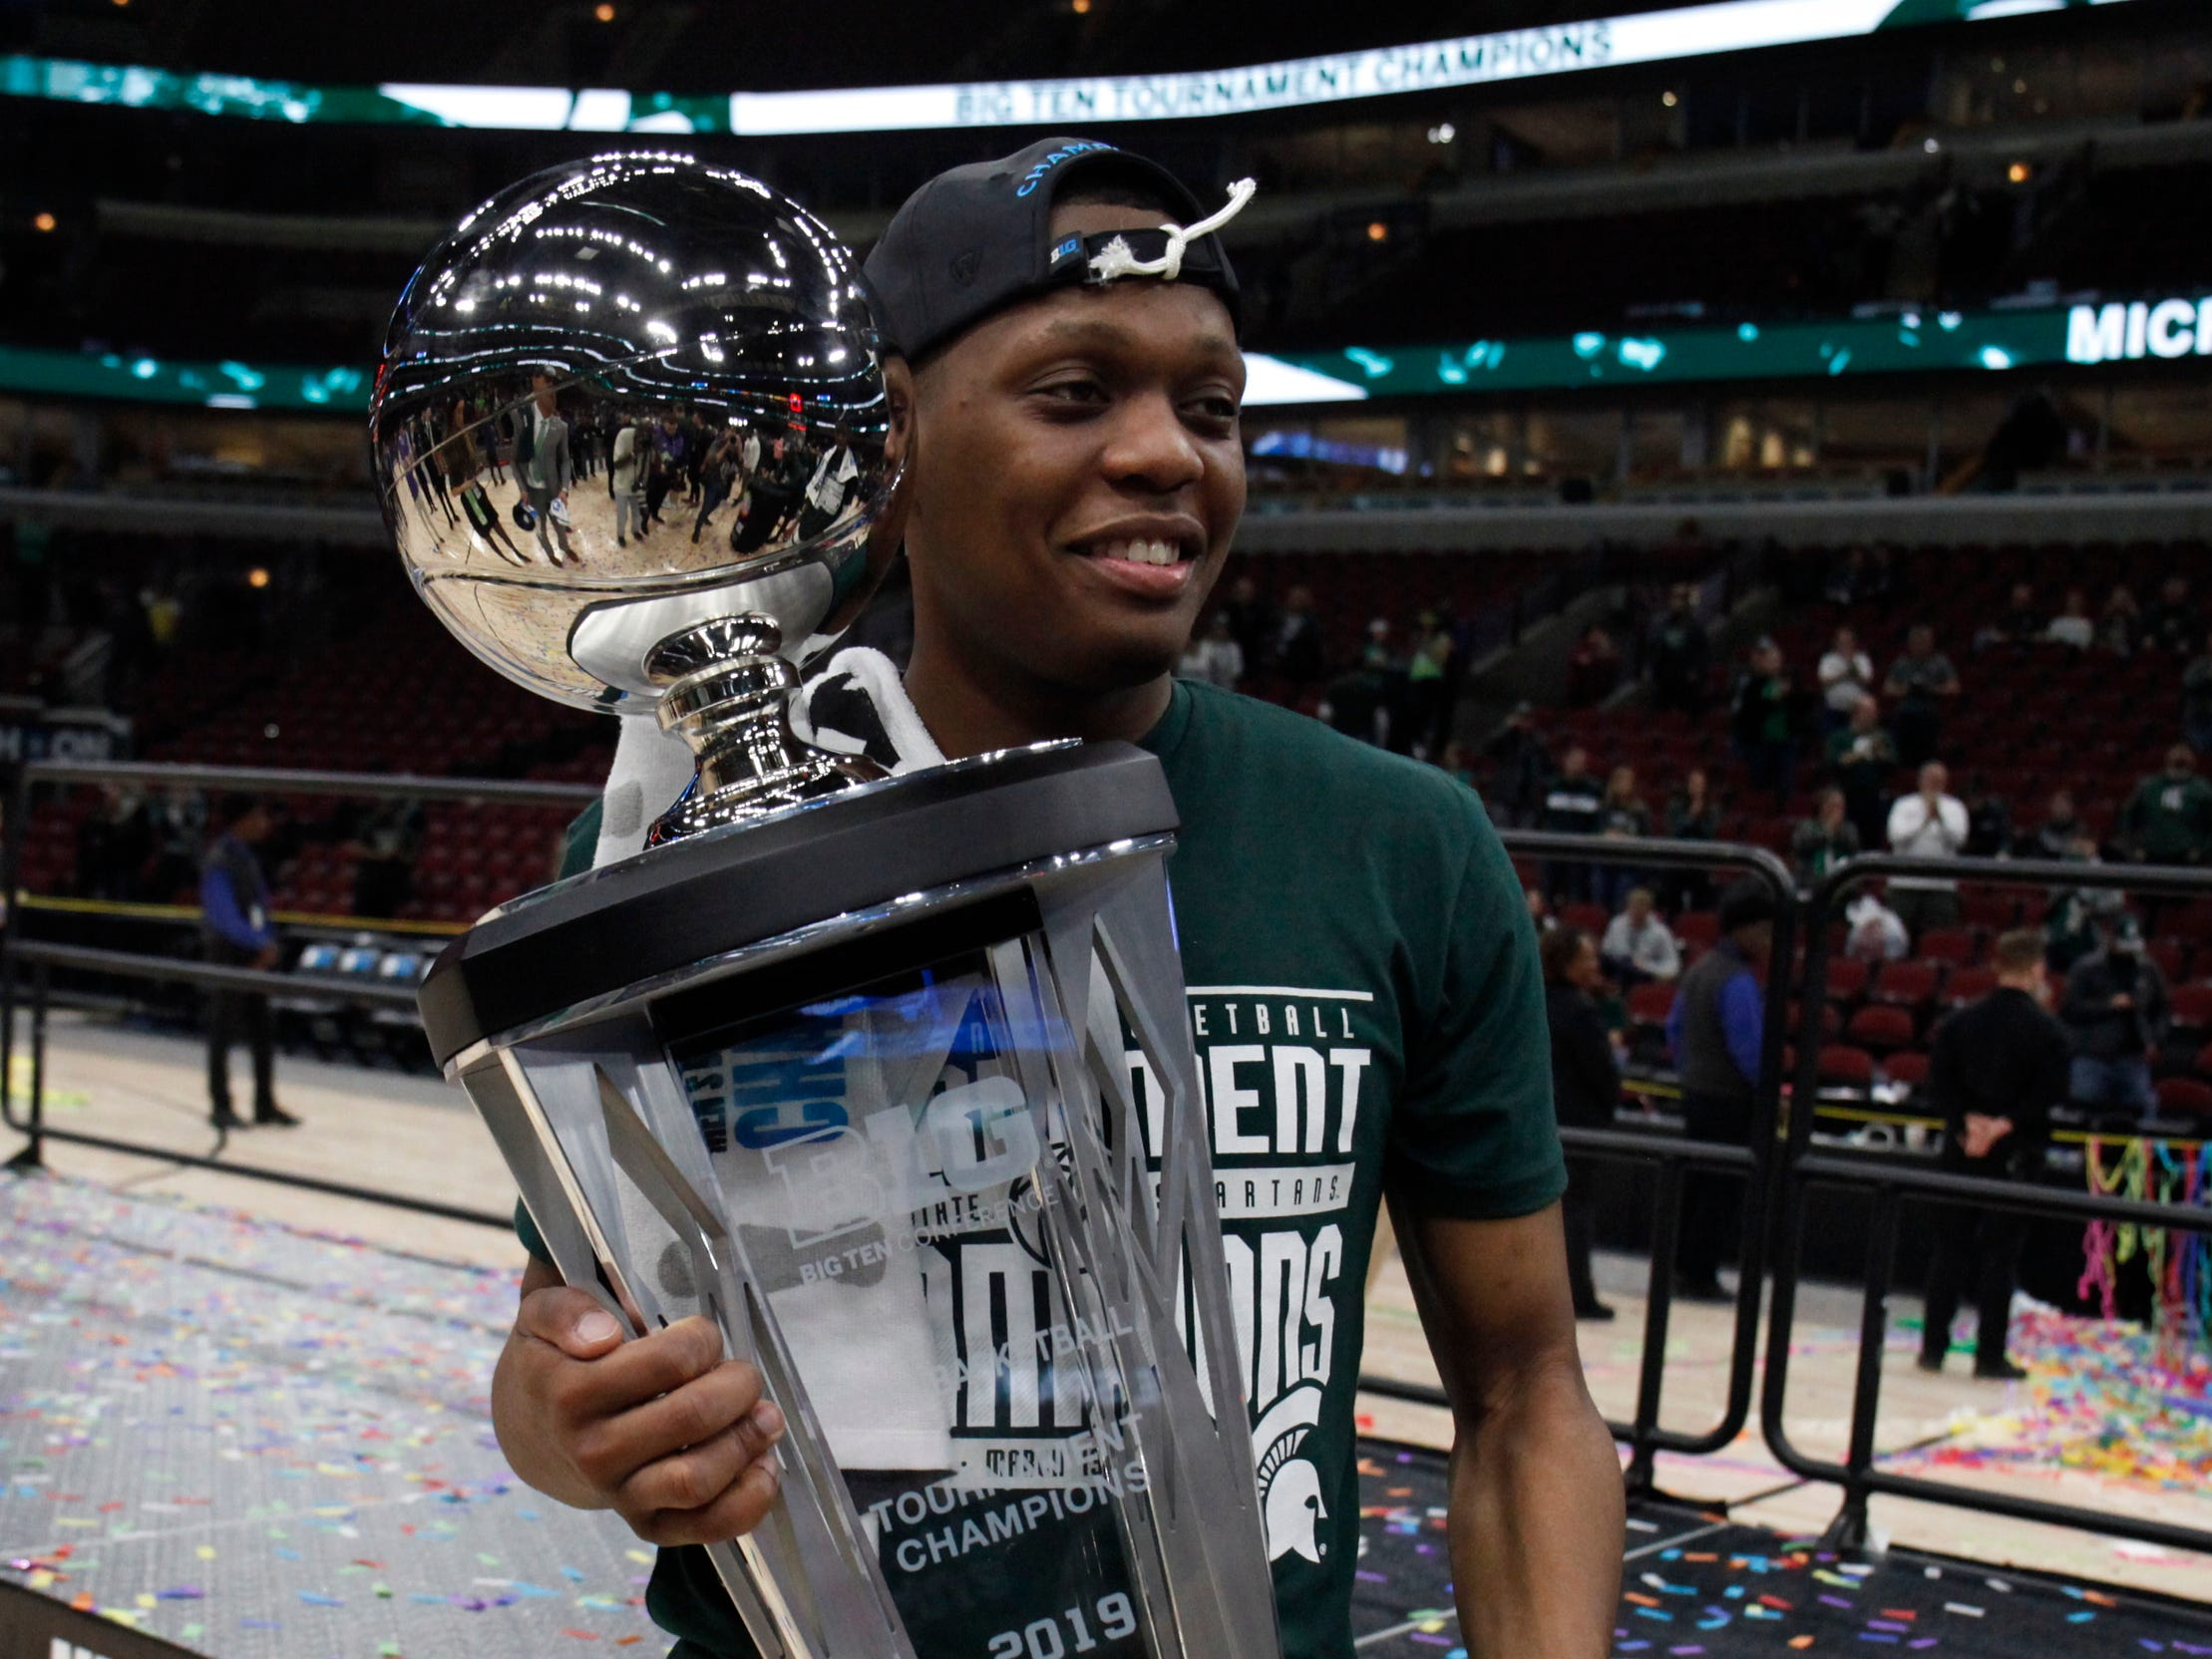 Michigan State guard Cassius Winston with the Big Ten tournament championship trophy after defeating Michigan, 65-60, Sunday, March 17, 2019 at the United Center in Chicago.